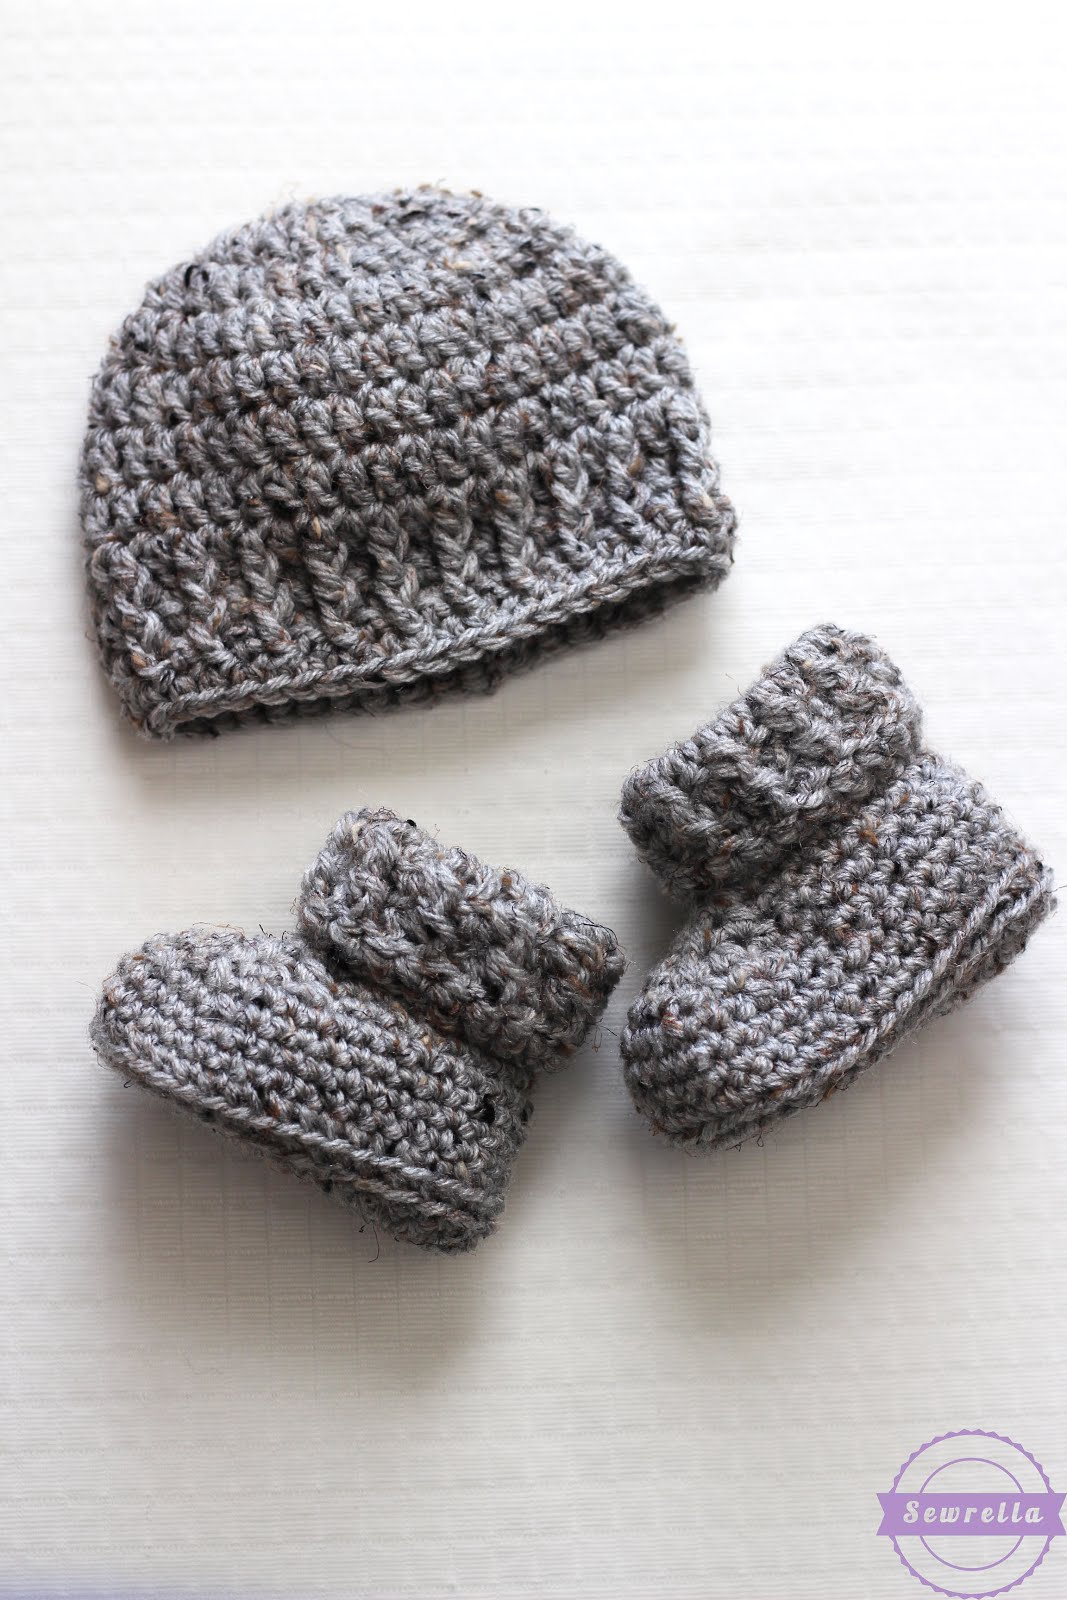 f59ffc2db5e2 The Parker Crochet Baby Booties - Sewrella